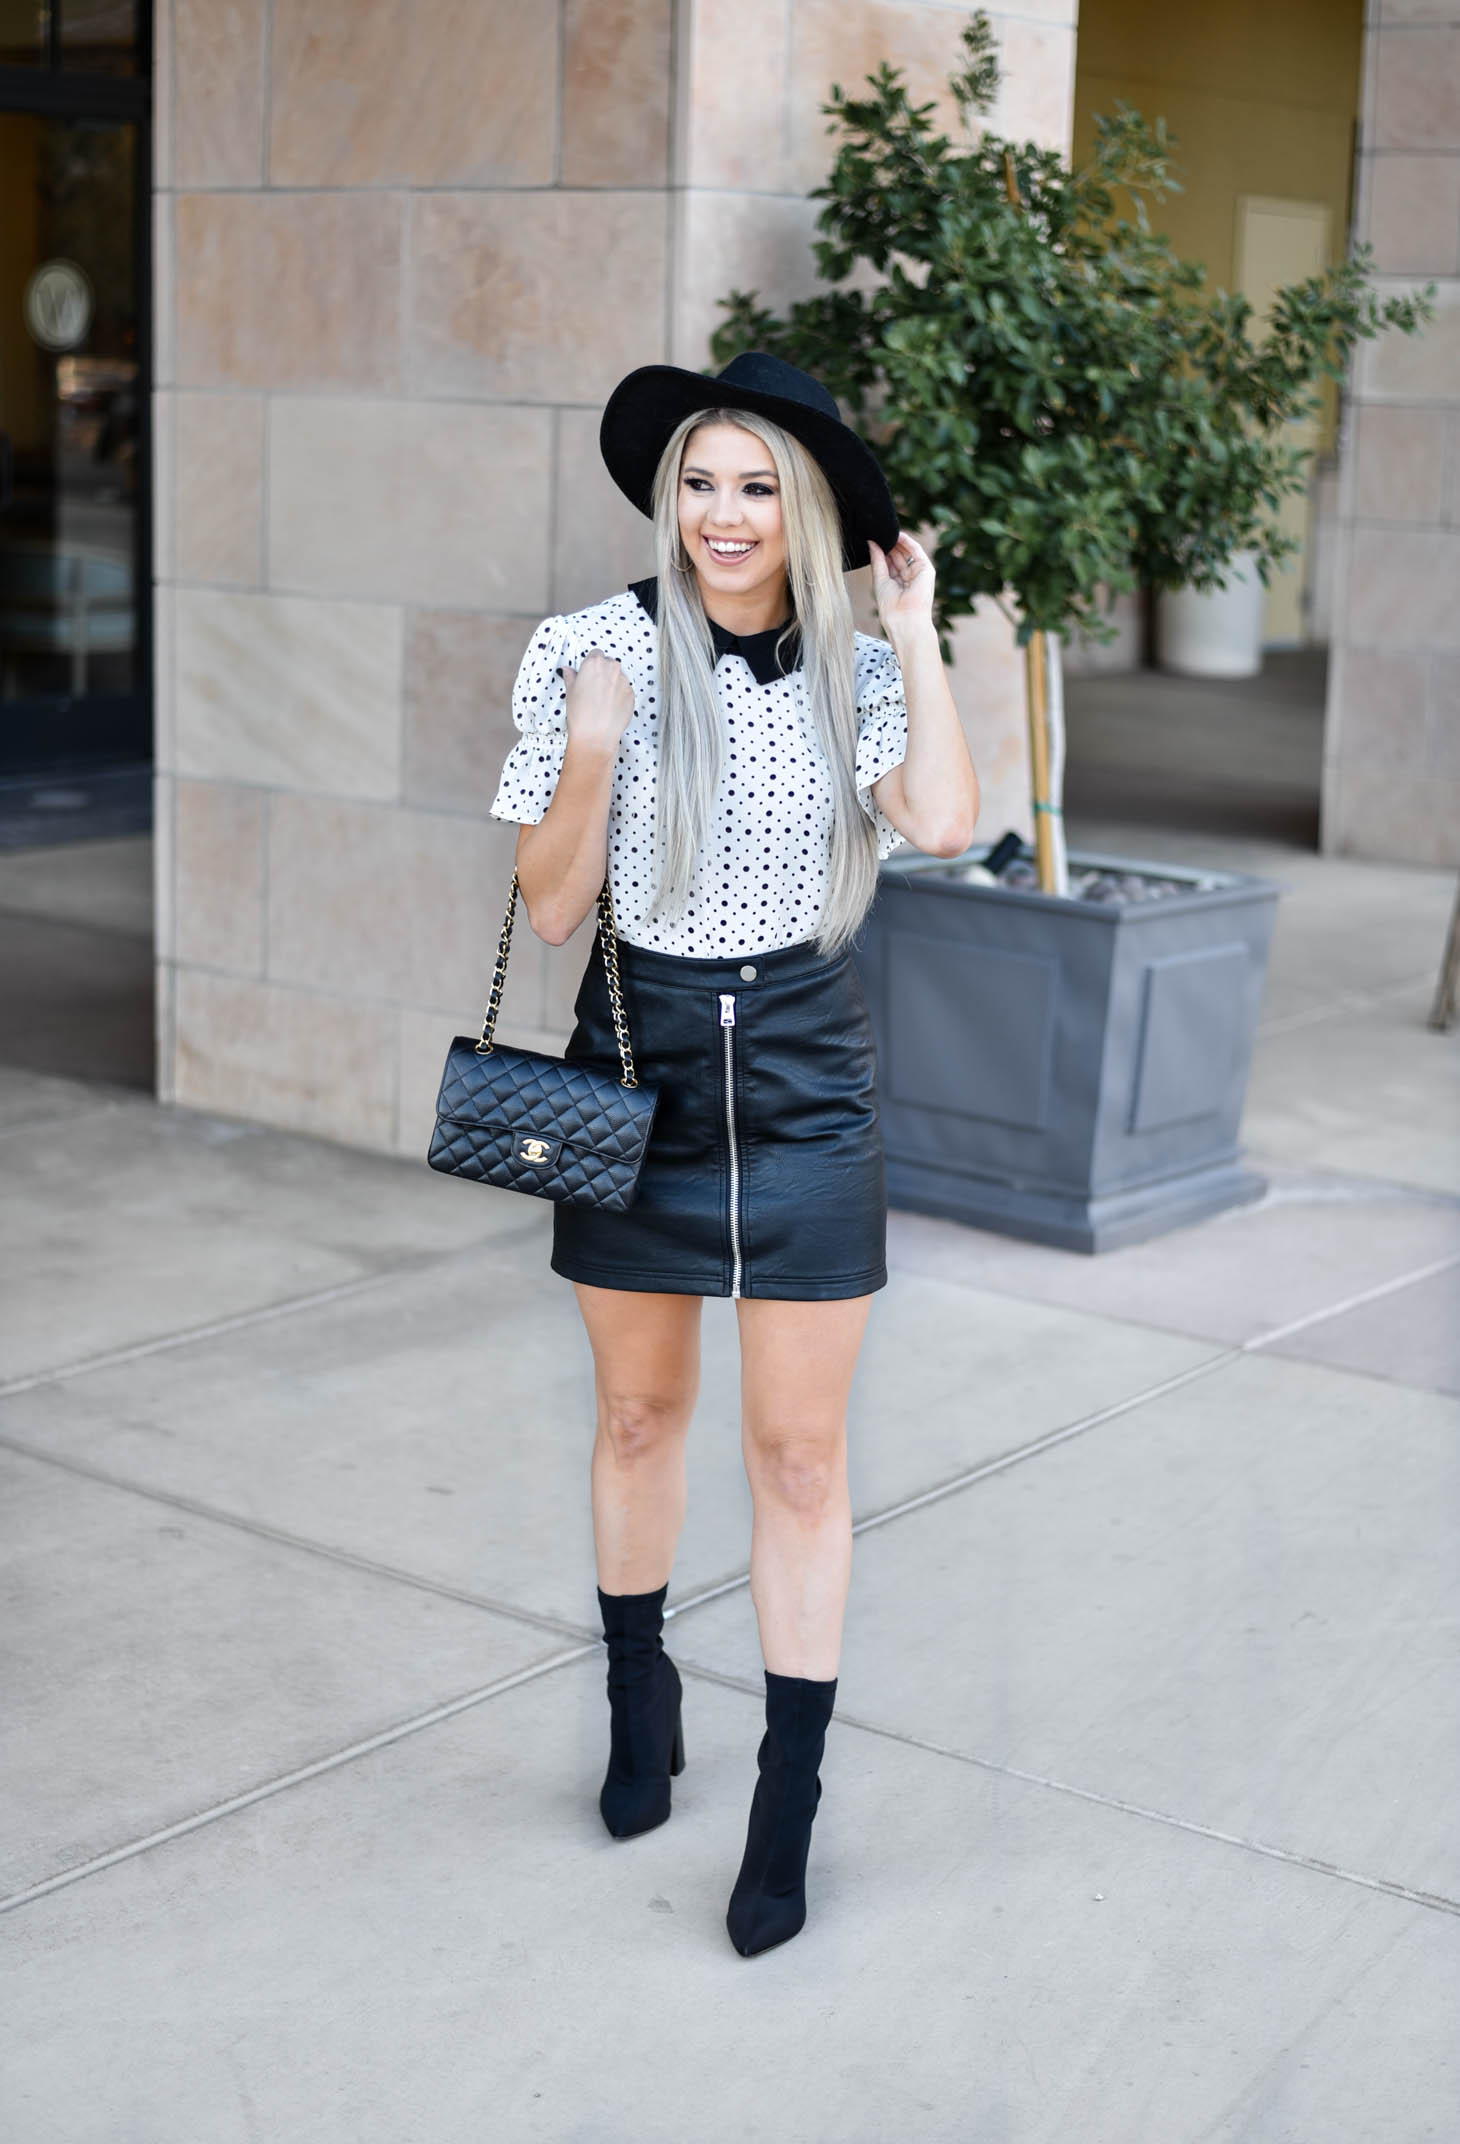 Erin Elizabeth of Wink and a Twirl shares the cutest CeCe Sportswear polka dot top and leather mini